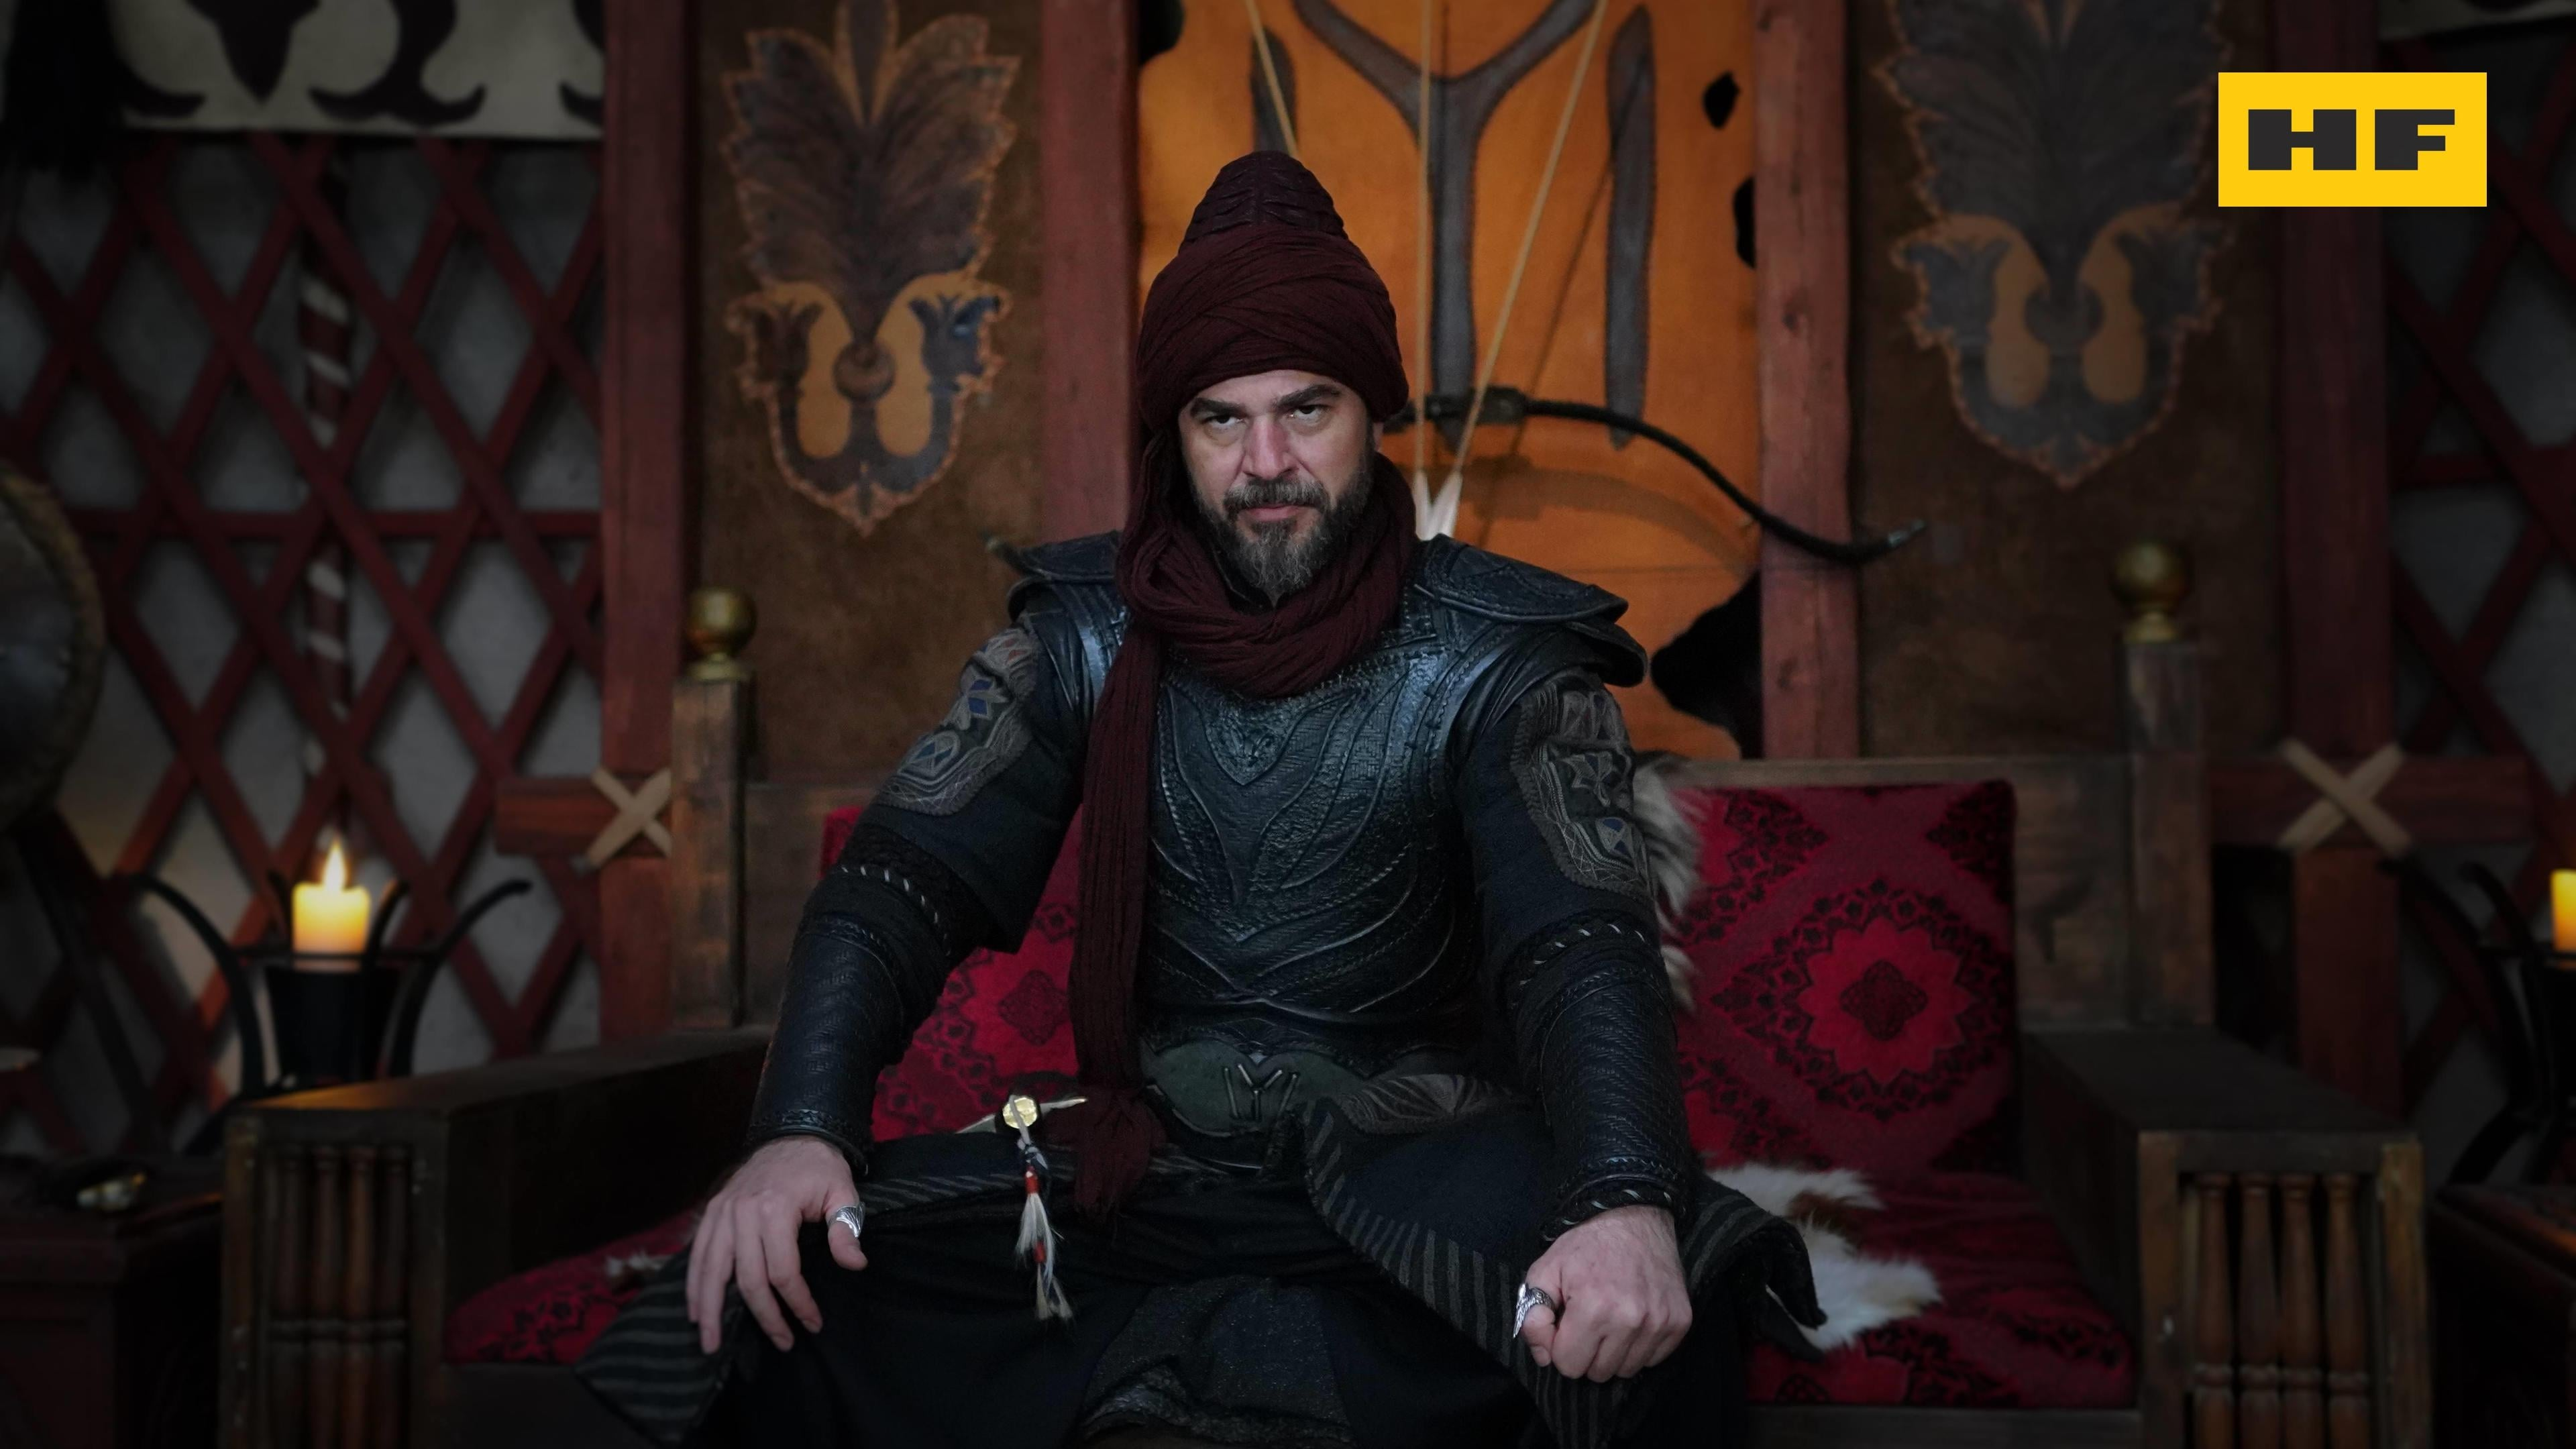 Dirilis Ertugrul Season 5 Episode 18